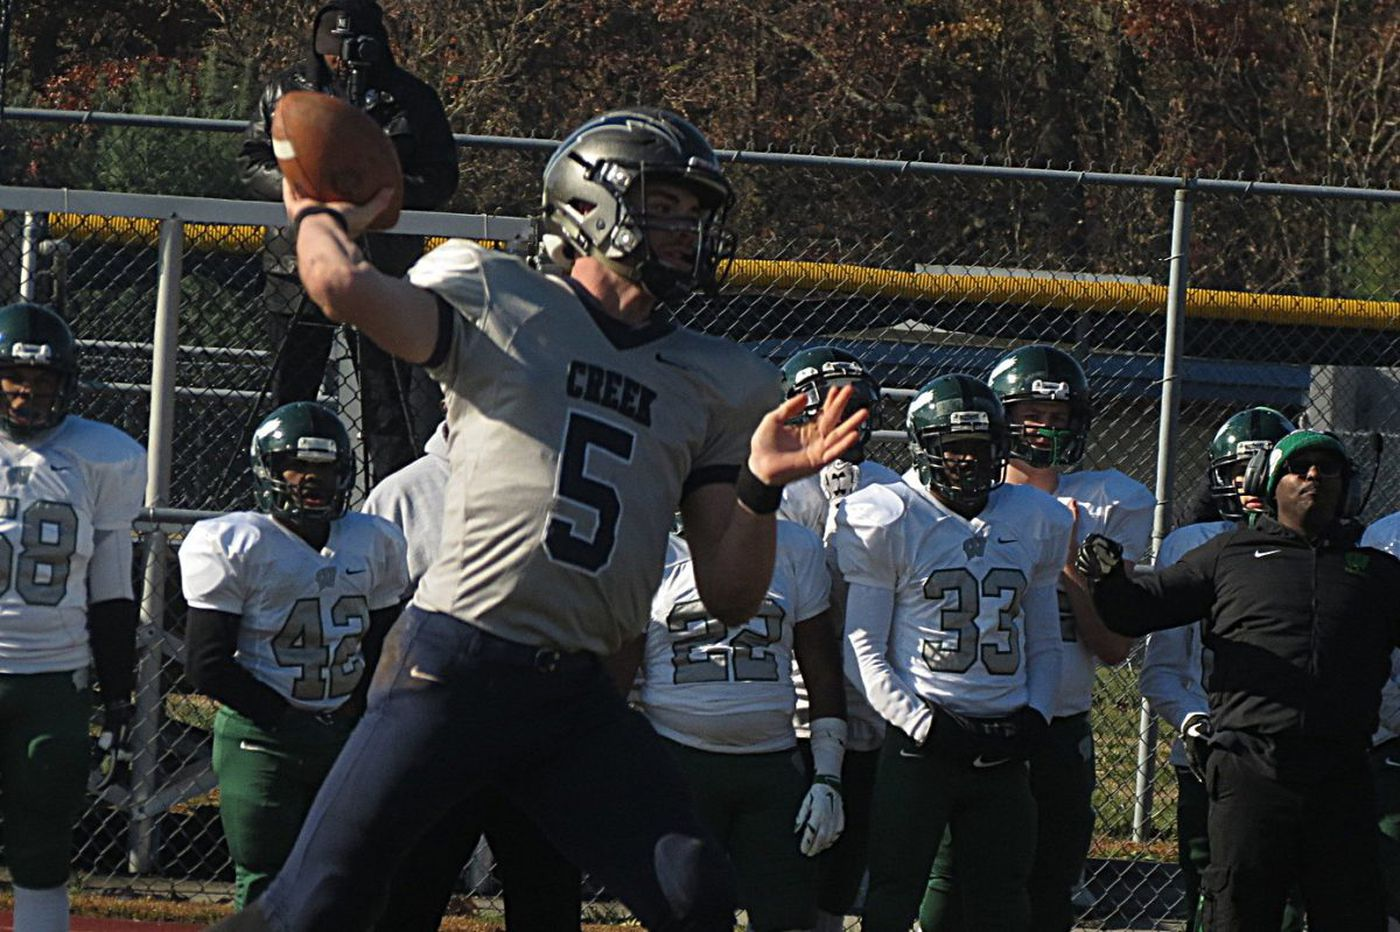 Timber Creek quarterback Devin Leary ends his South Jersey footbal career with a touchdown catch